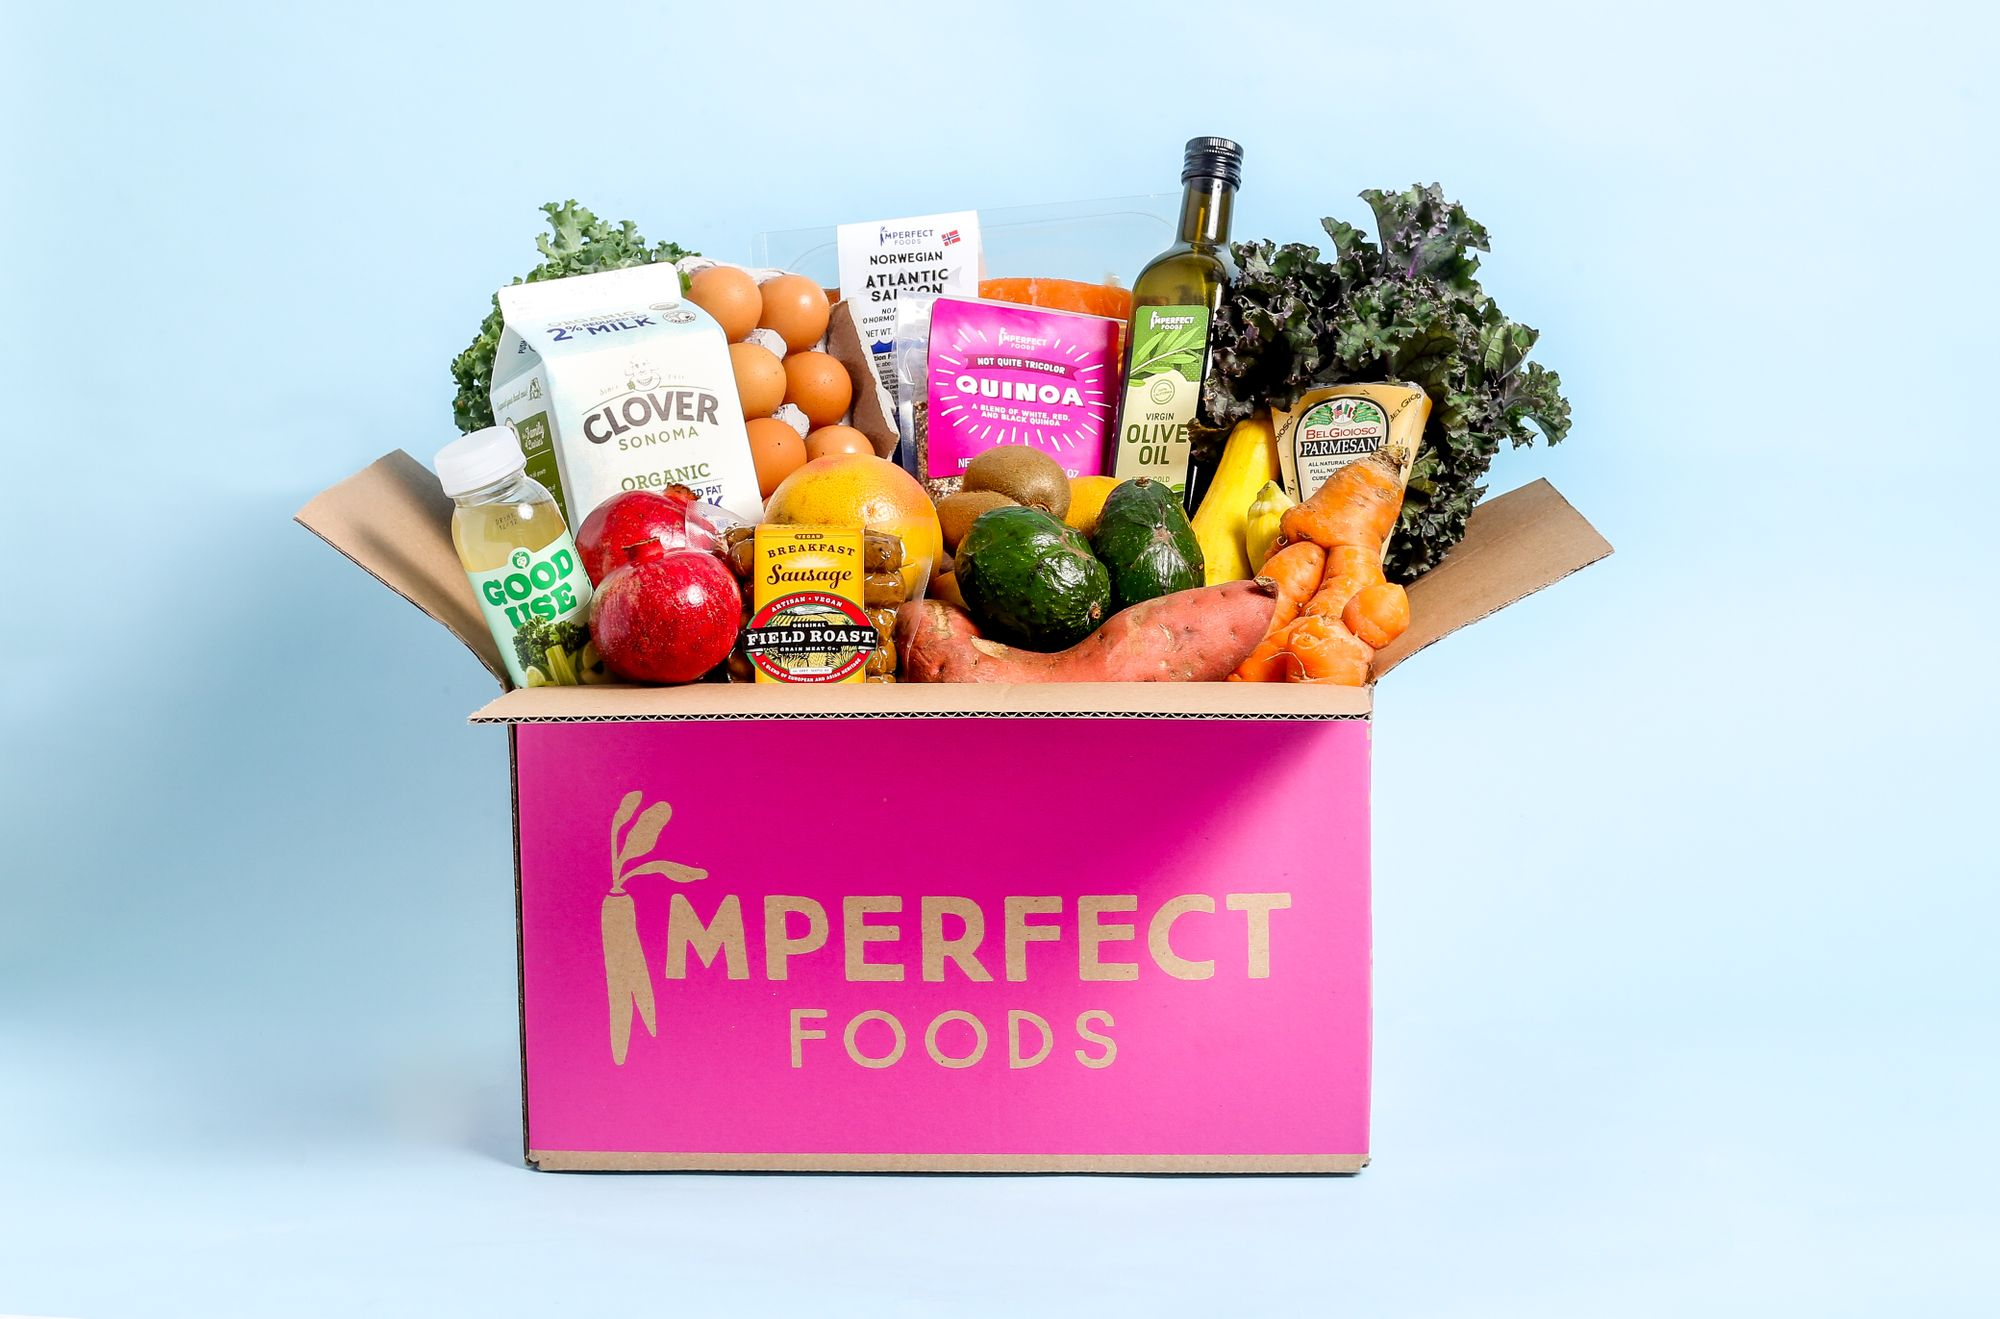 Imperfect Foods and Onfleet partner to deliver groceries